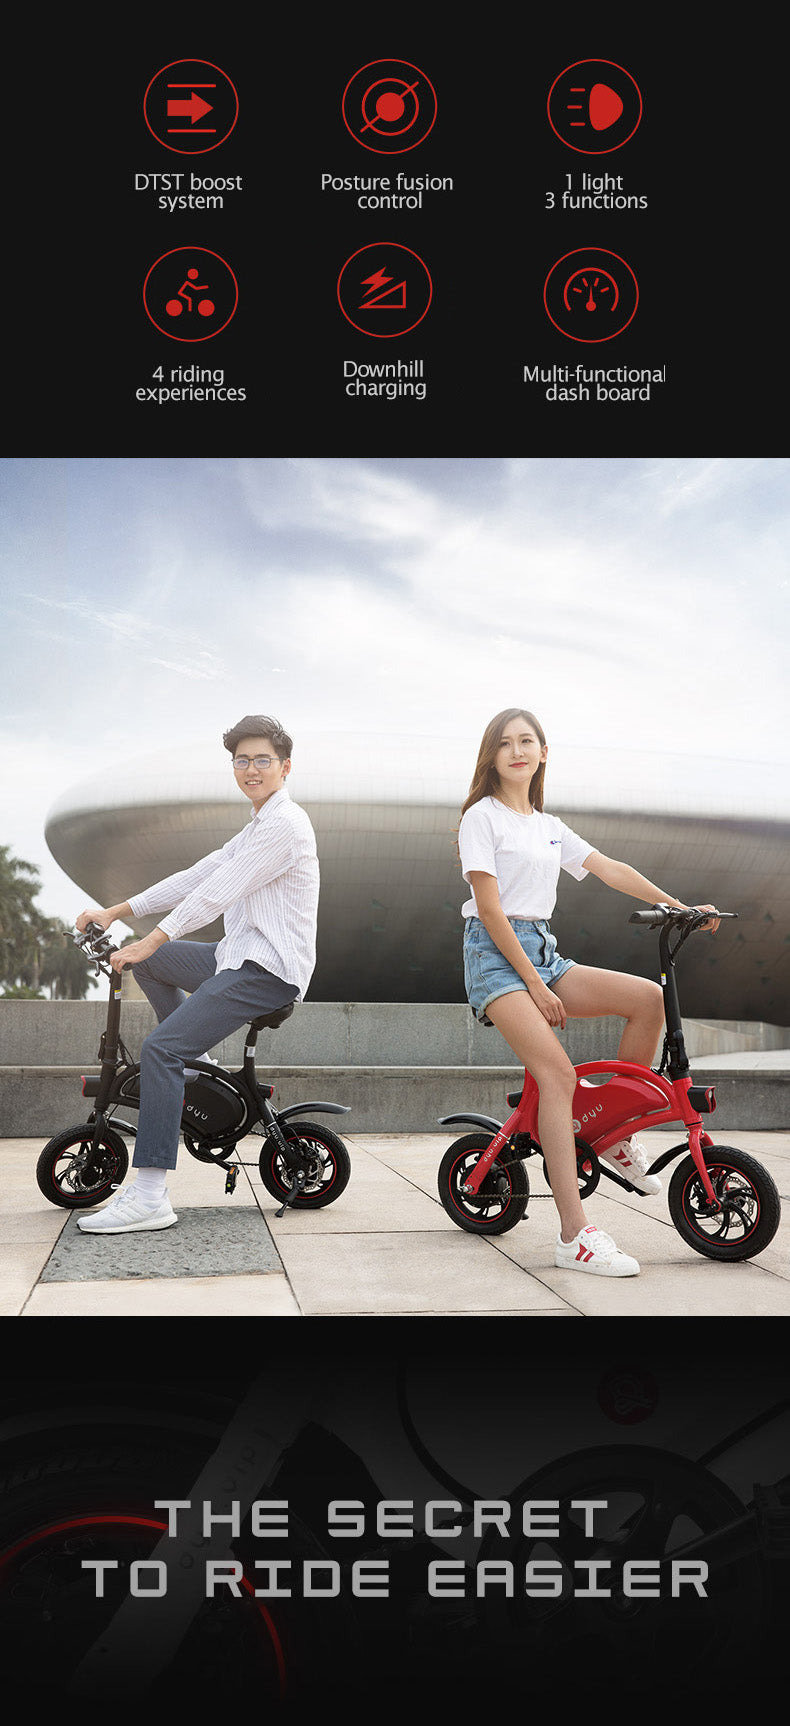 DYU D2f electric bike